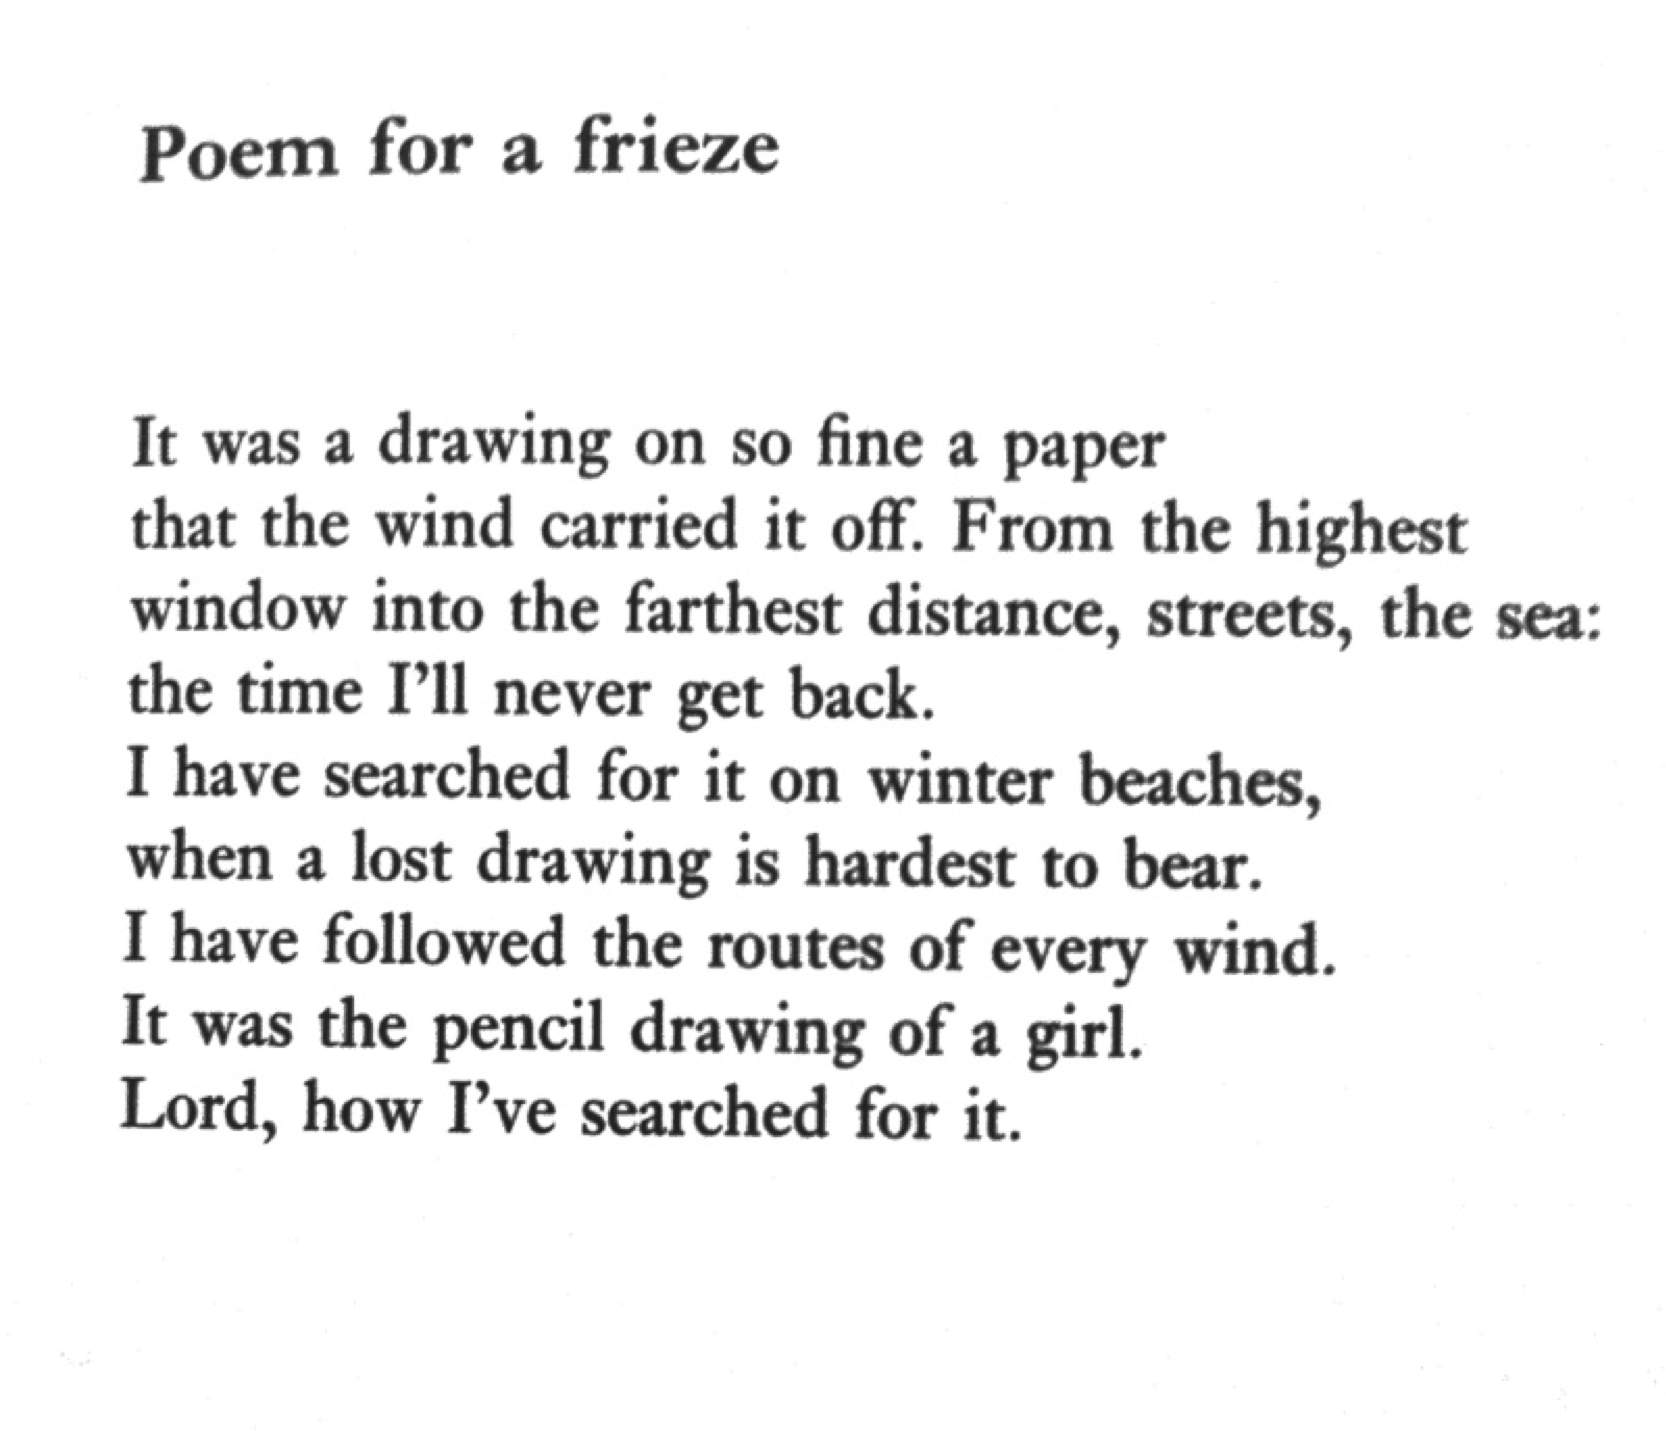 POEM FOR A FRIEZE.jpg